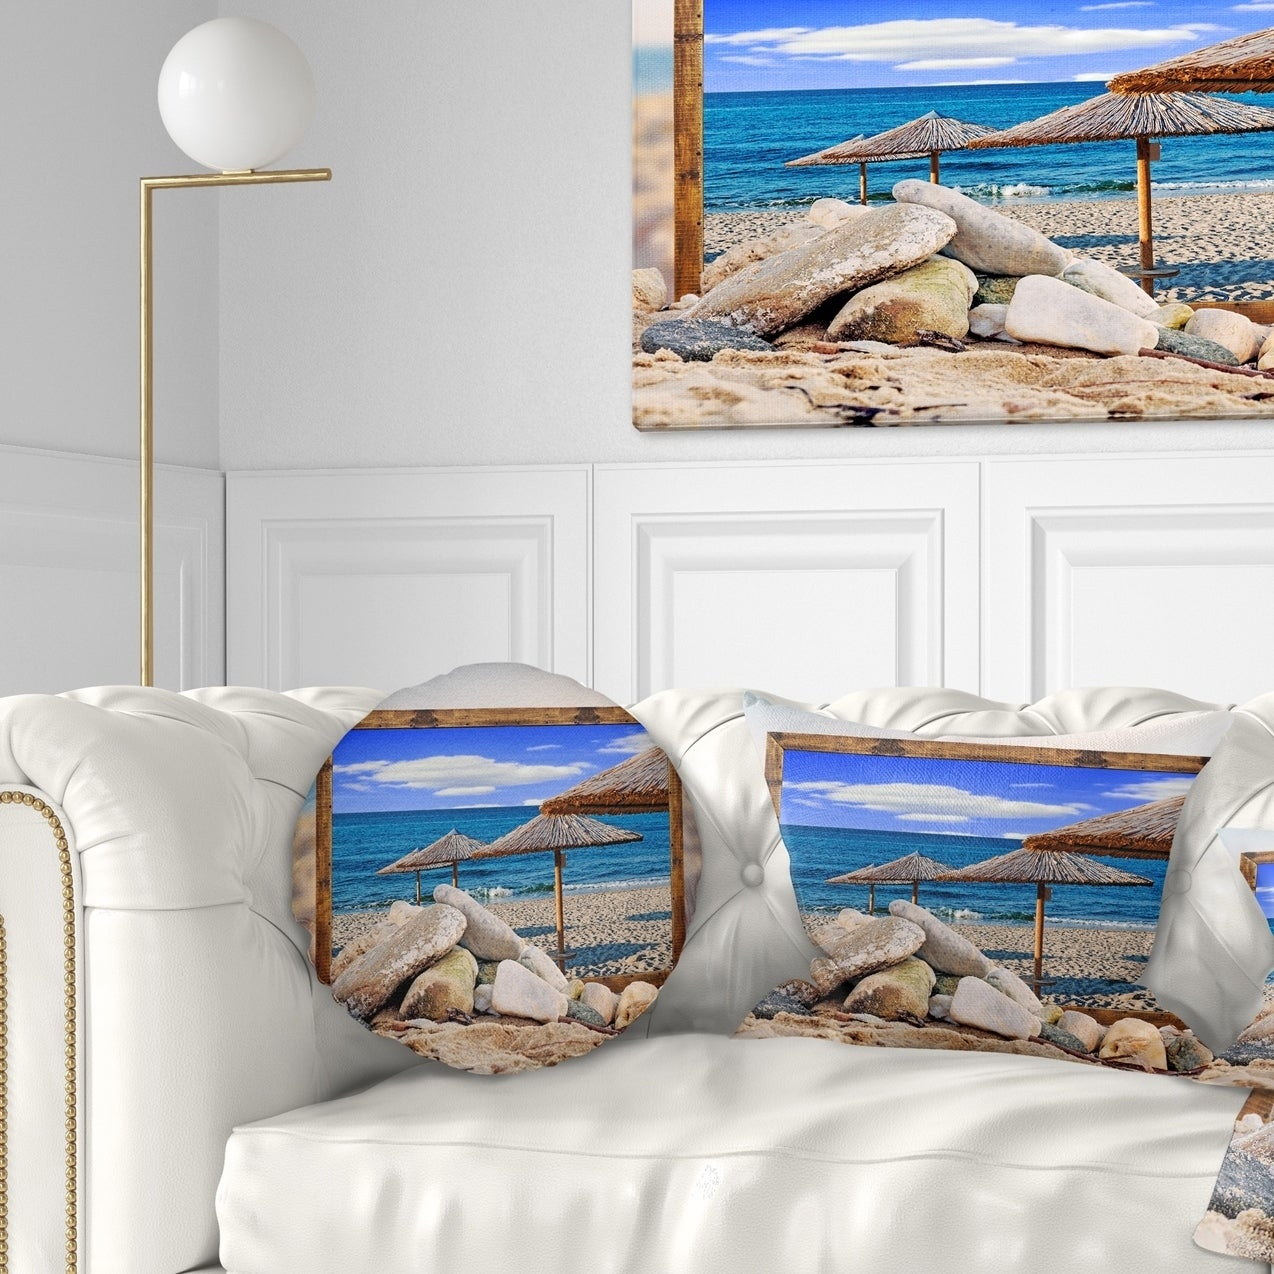 Insert Printed On Both Side Designart Cu9471 18 18 Framed Effect Beach Umbrellas Seashore Cushion Cover For Living Room Sofa Throw Pillow 18 In In X 18 In Throw Pillow Covers